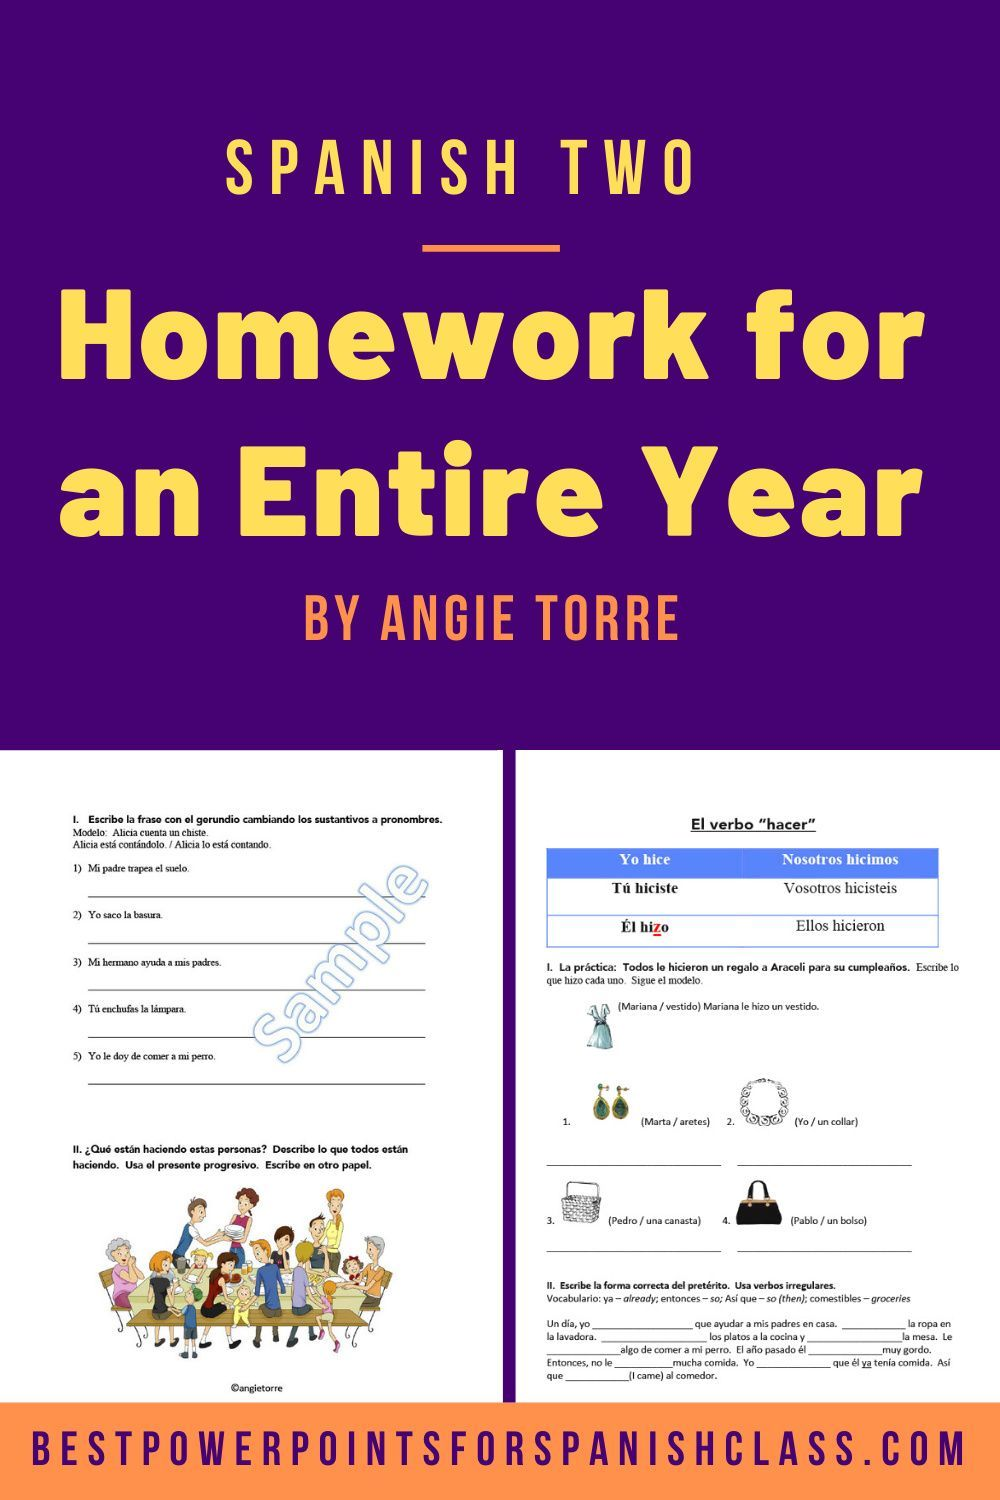 Spanish Two Homework For An Entire Year Best Powerpoints In 2021 Cloze Activity Instructional Resources Interactive Notebook Activities [ 1500 x 1000 Pixel ]